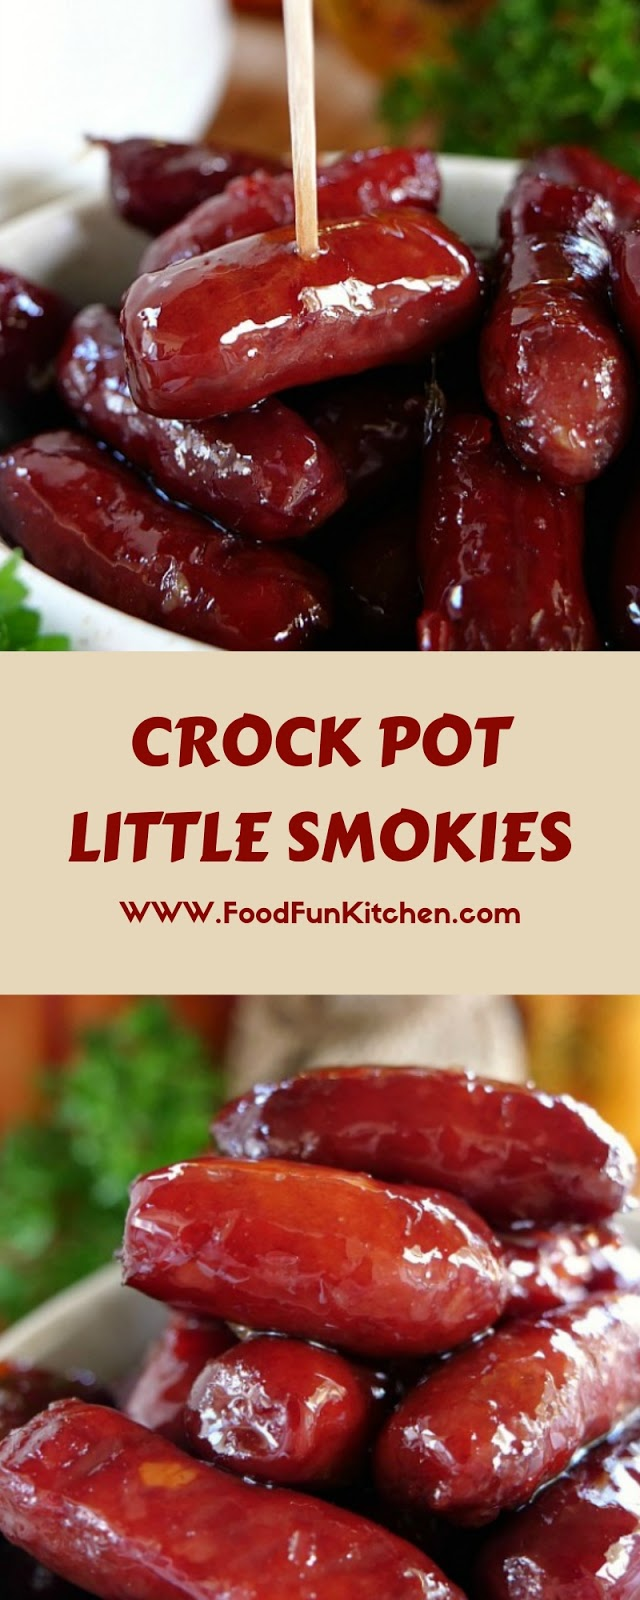 CROCK POT LITTLE SMOKIES